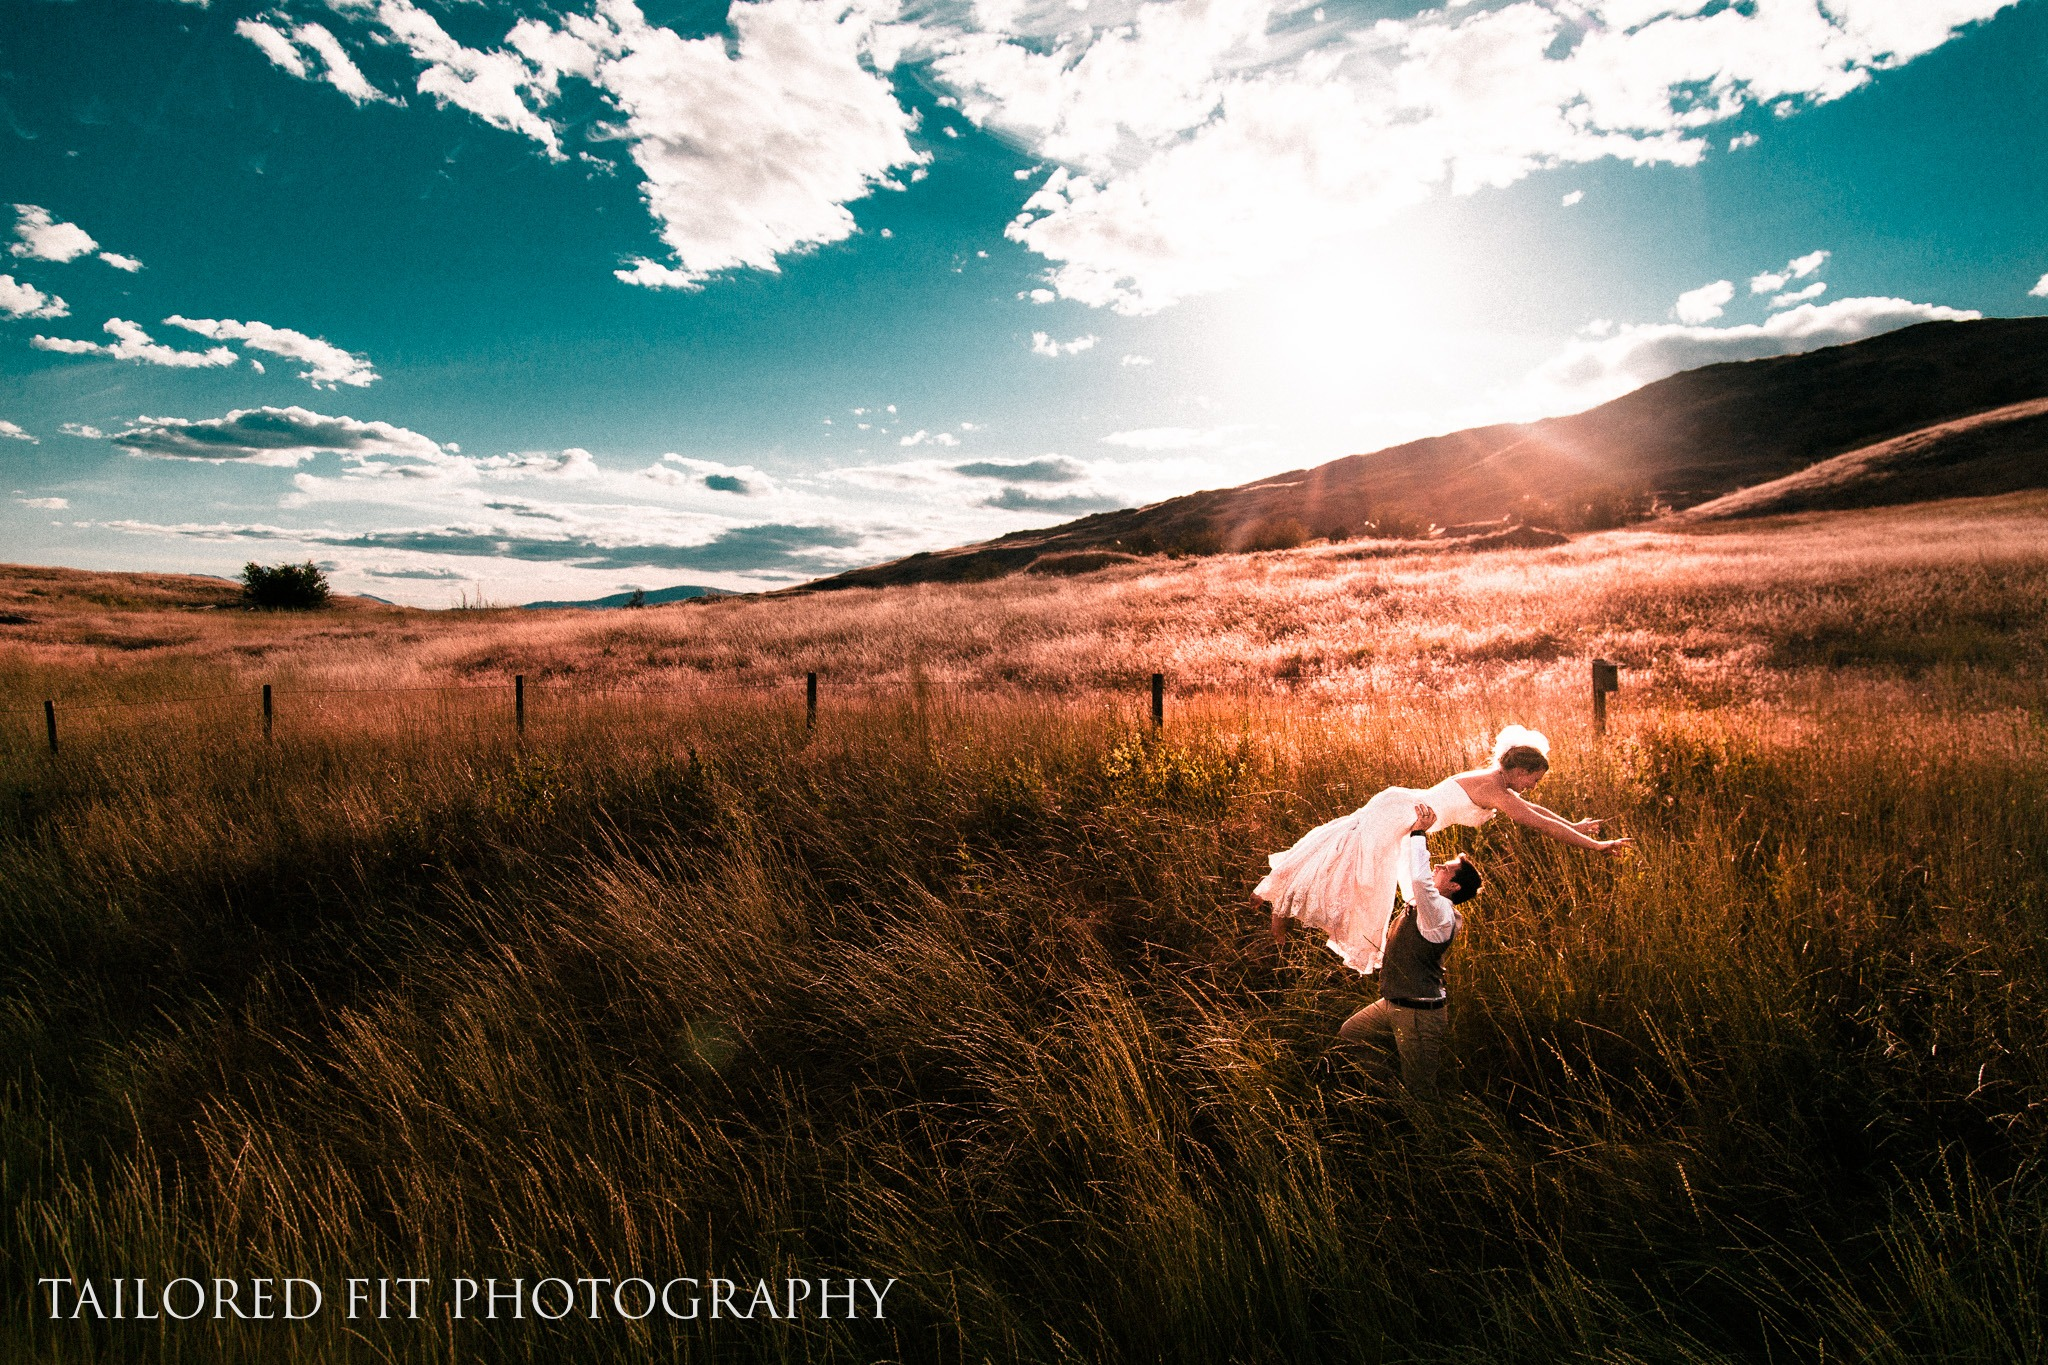 Vernon Wedding Photography - Tailored Fit Photography - Vernon Wedding Photos-0007